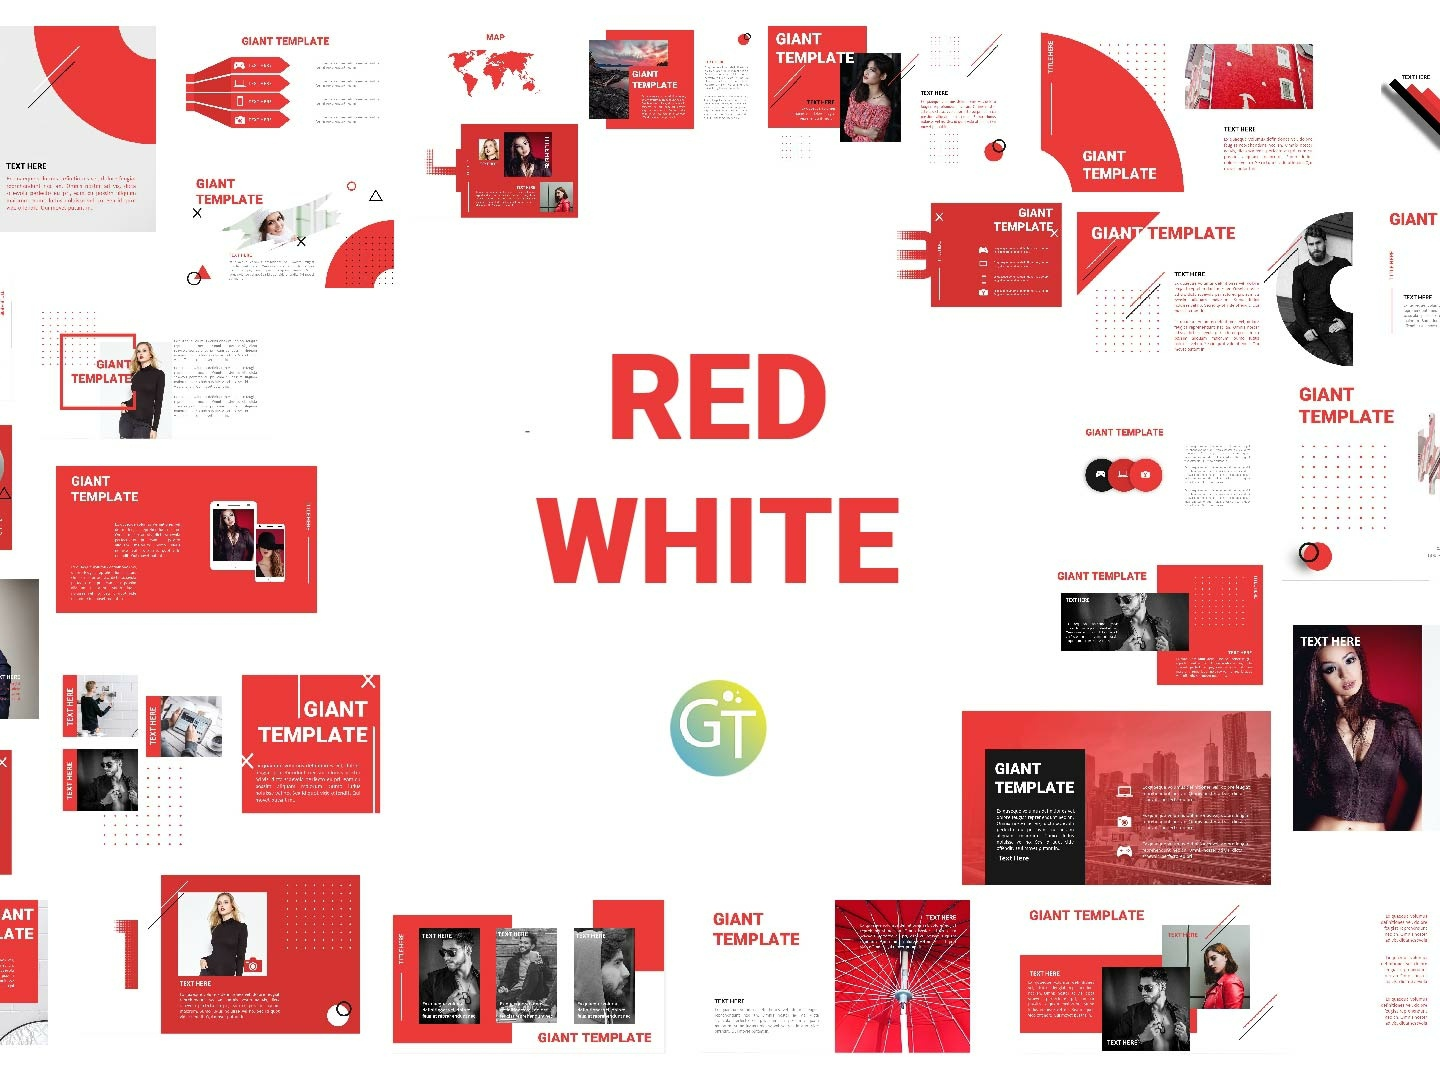 Red White - Free Powerpoint Template by Giant Template on